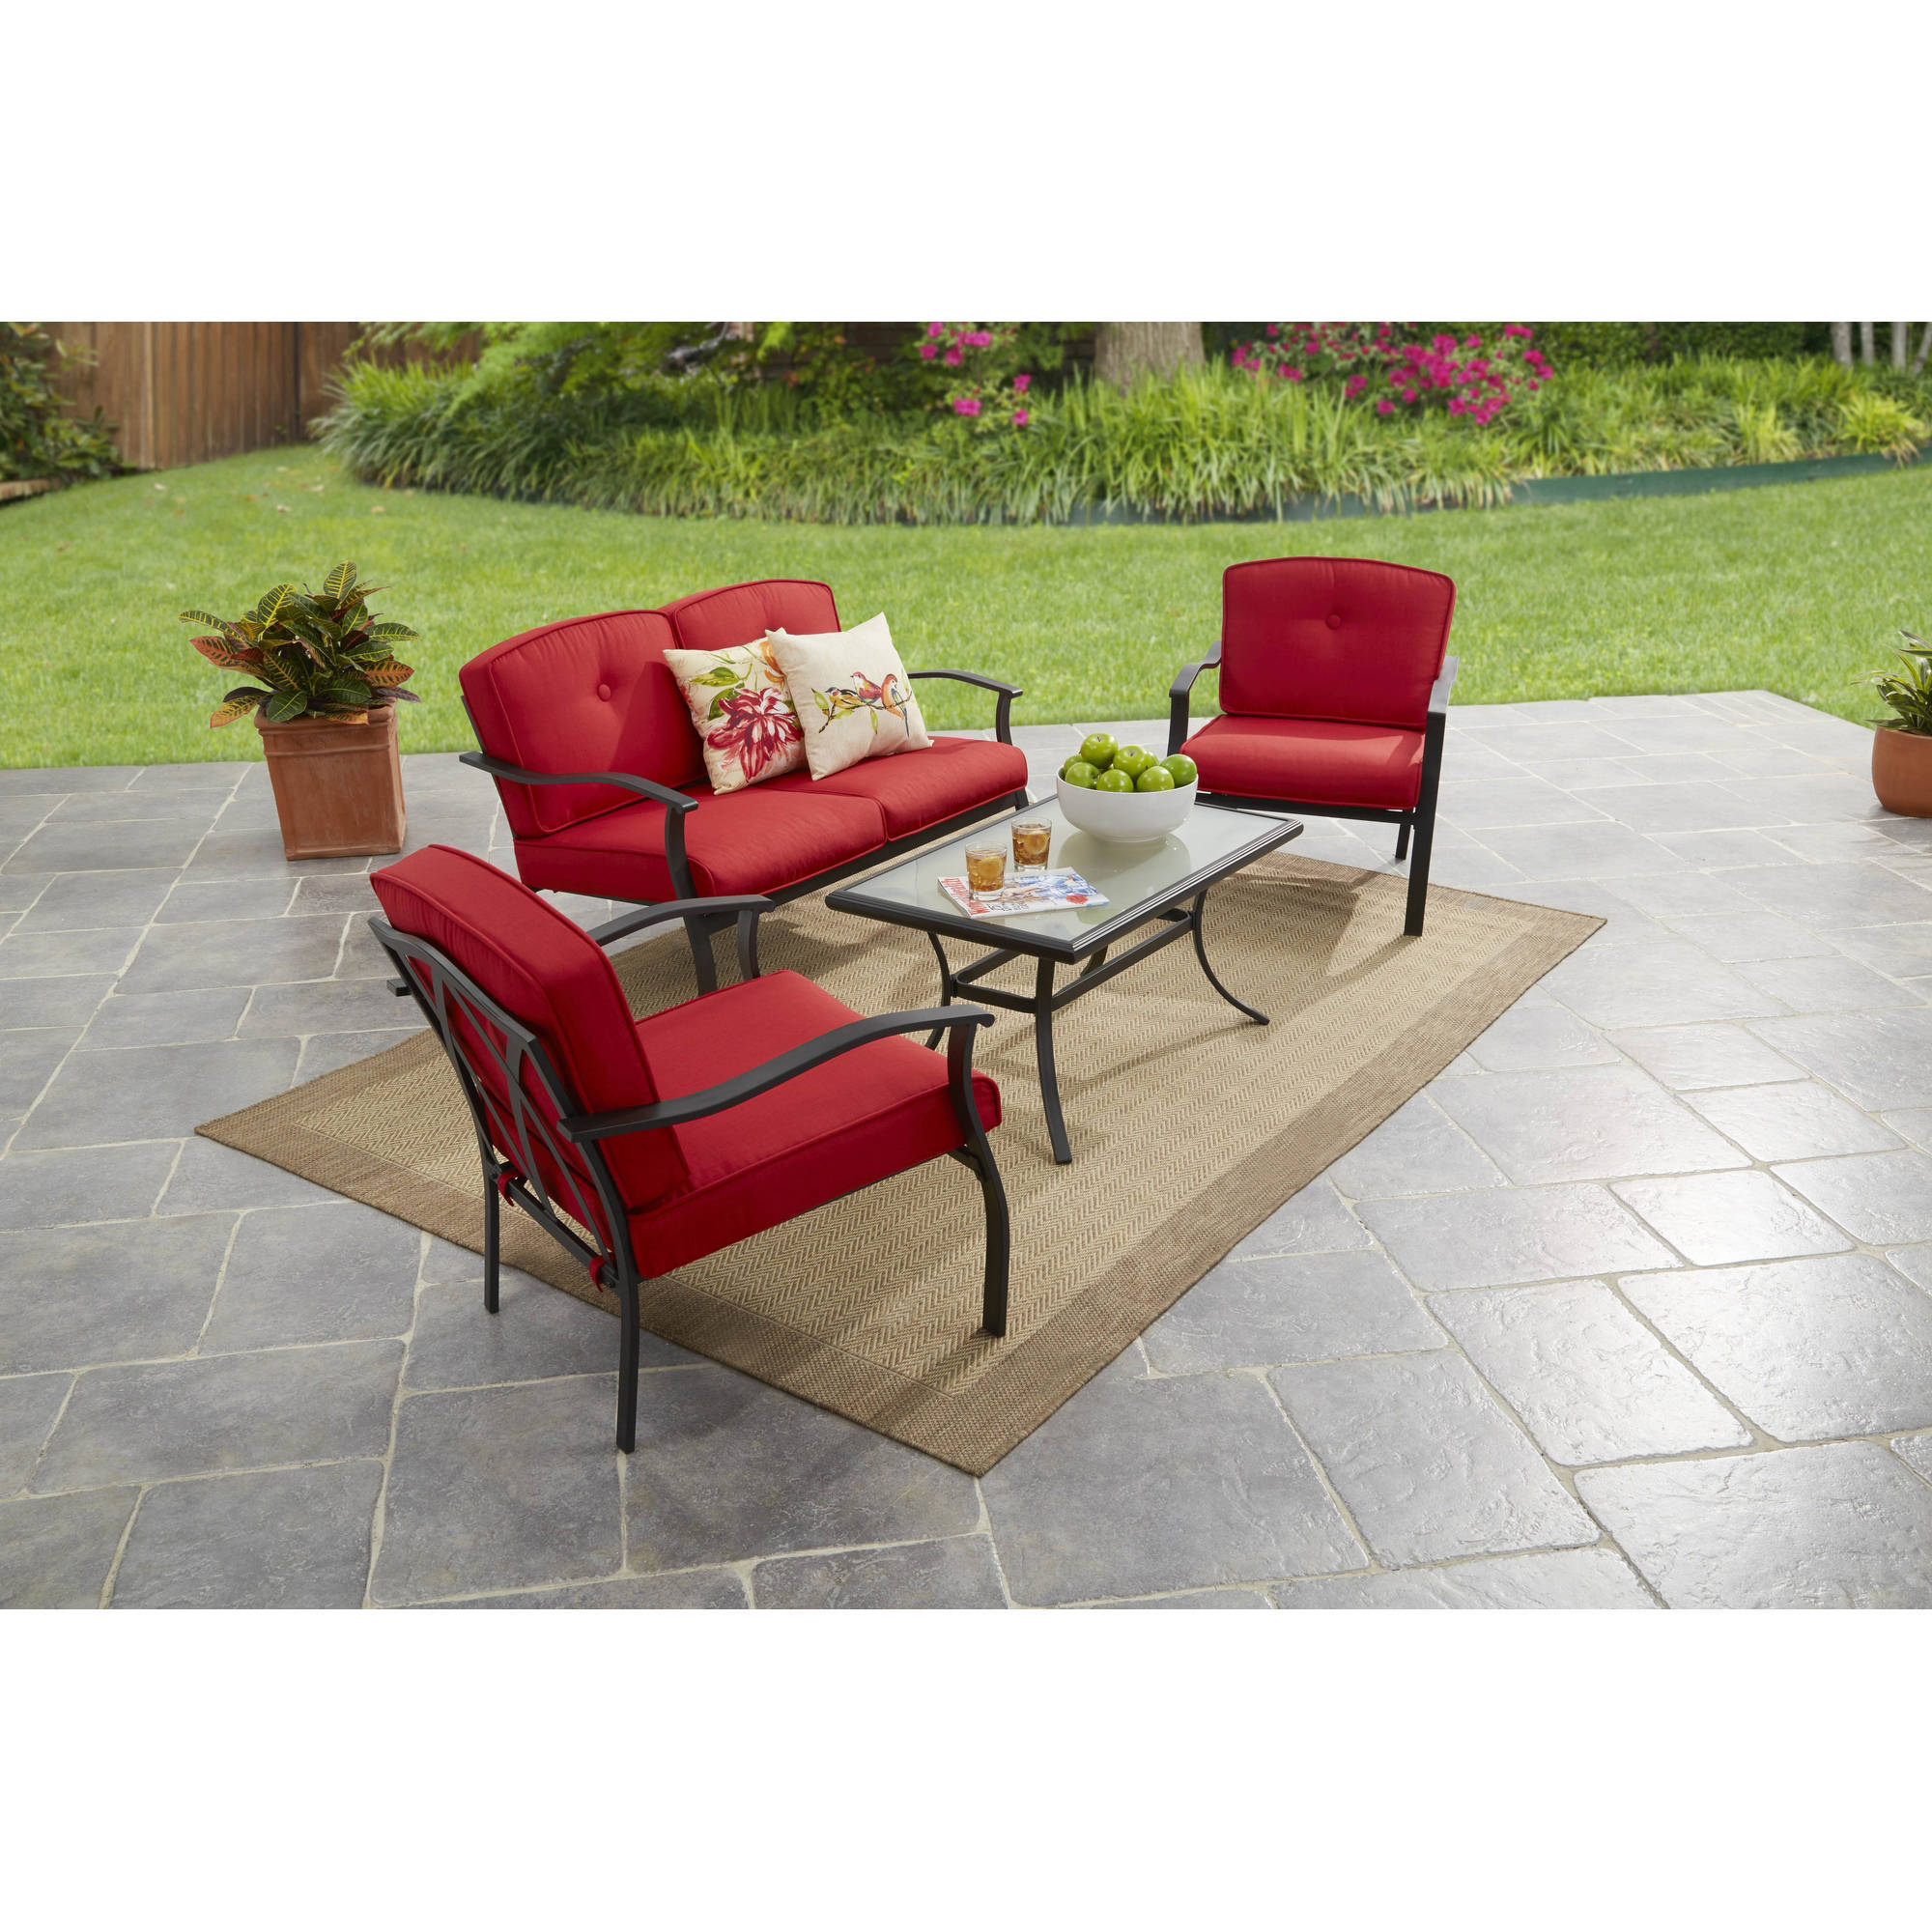 Mainstays Belden Park 4-Piece Sofa Set